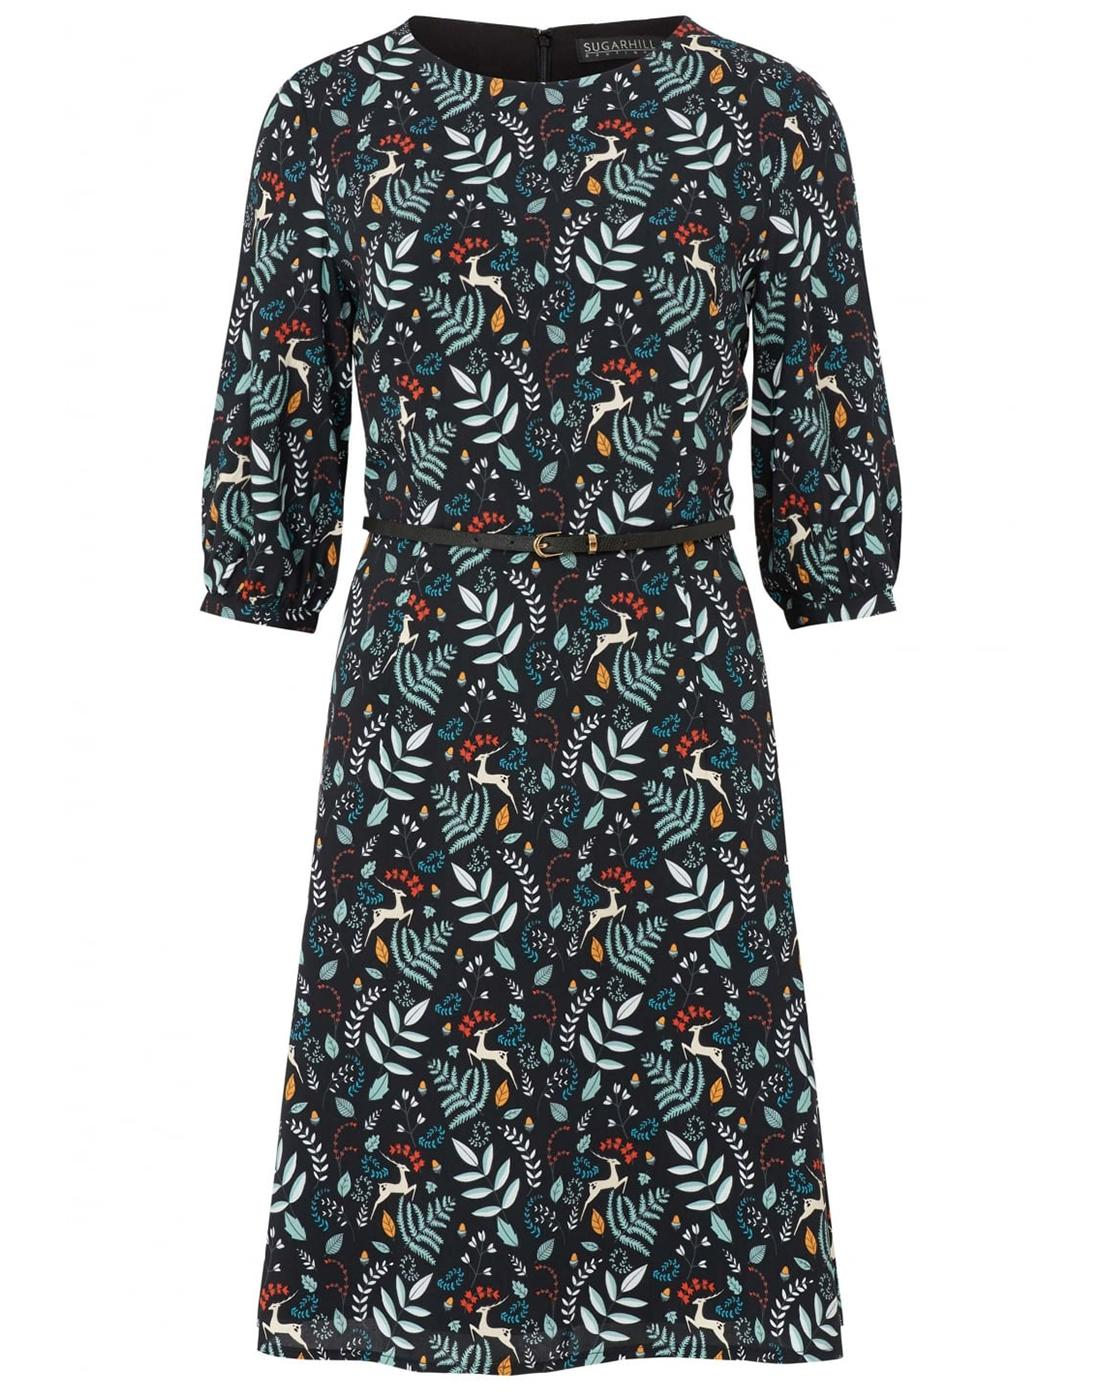 Cate SUGARHILL BOUTIQUE Enchanted Forest Dress